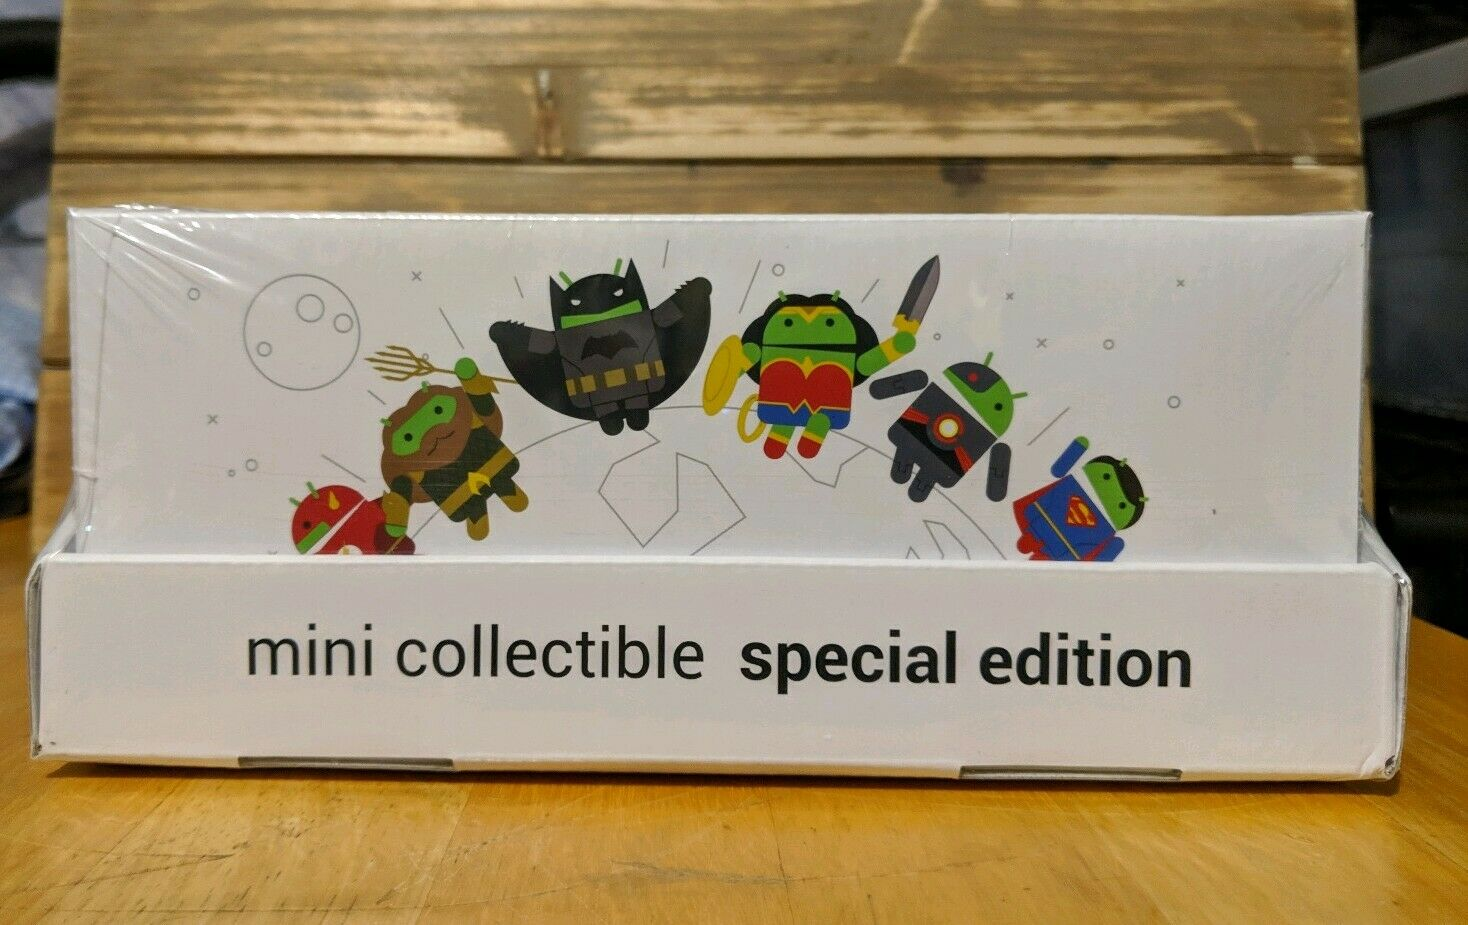 Android Pay Mini Collectible Special Edition Justice League Figures